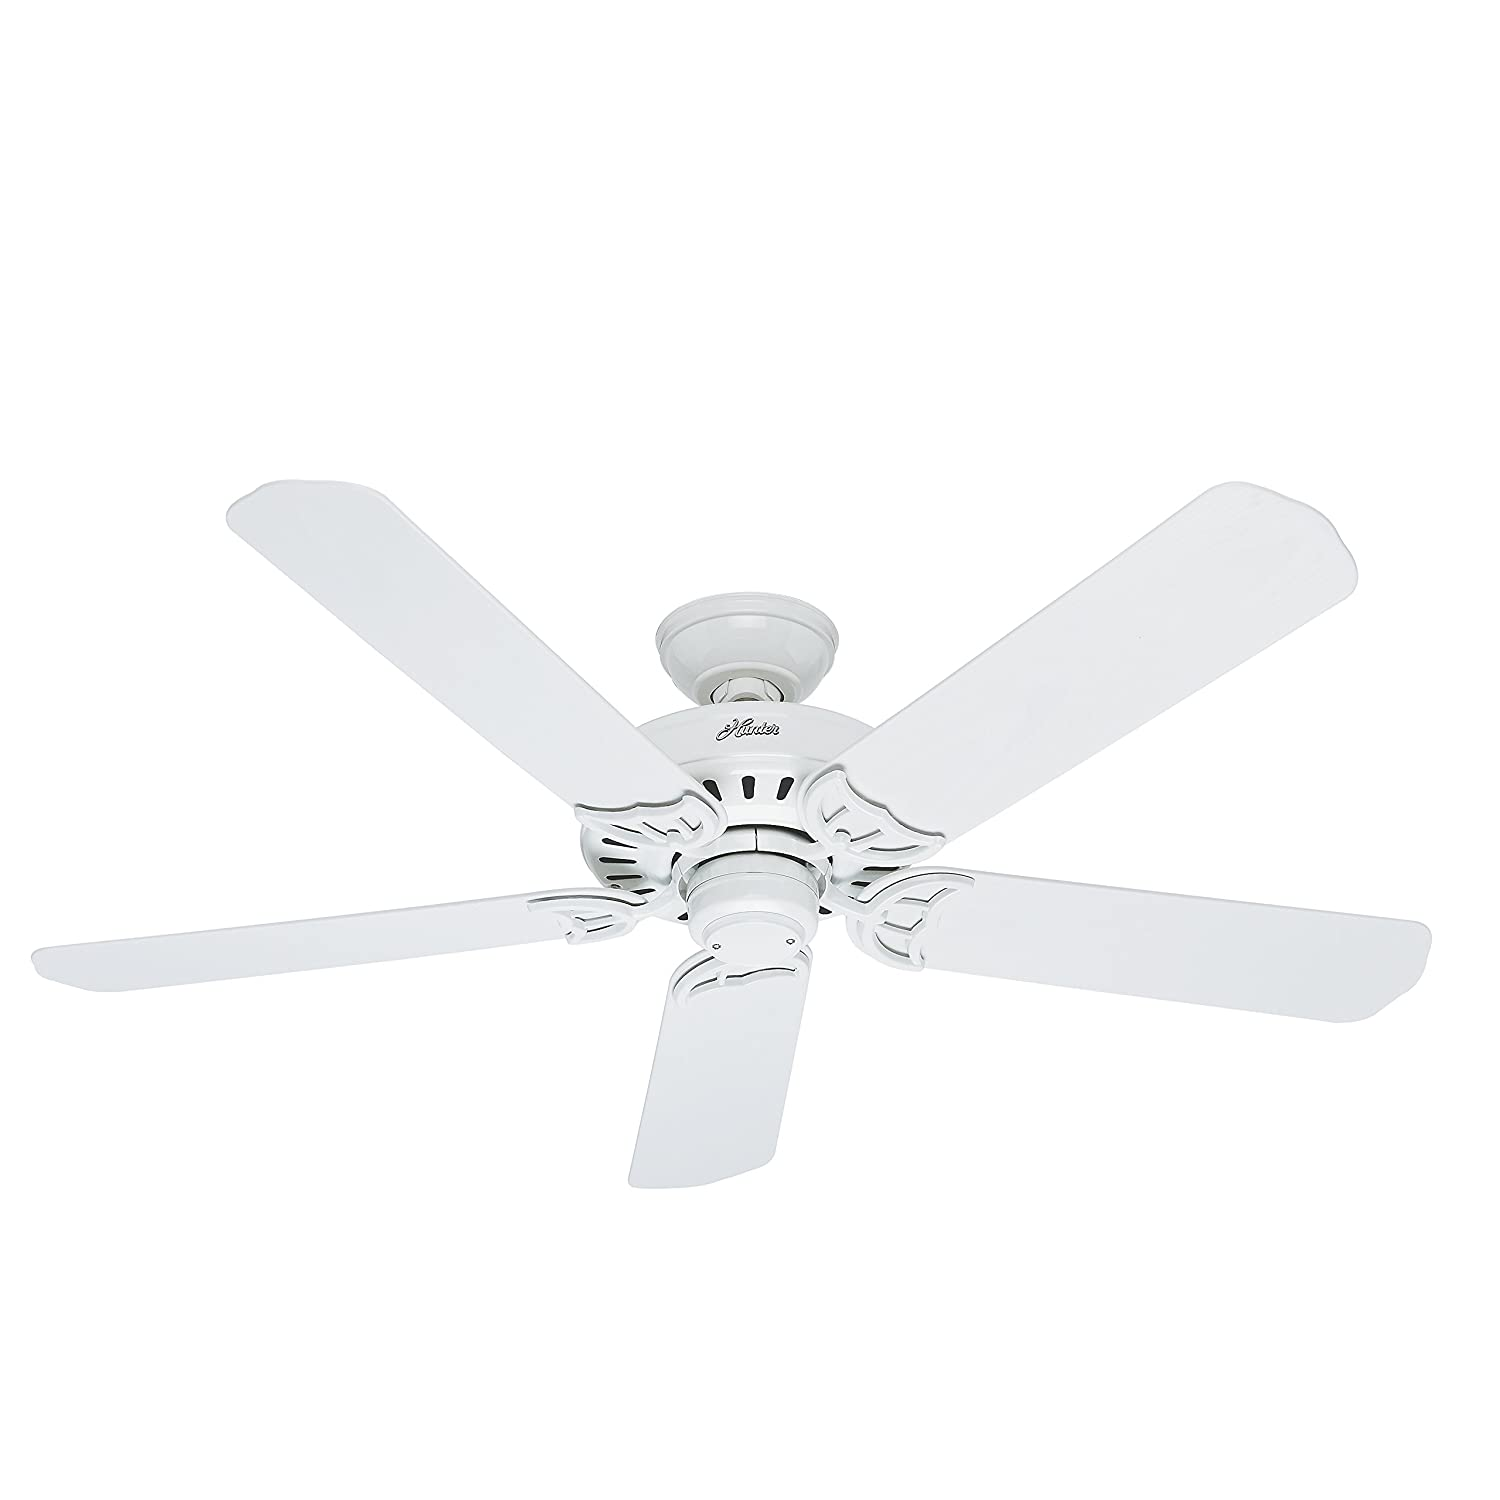 Top 6 Best Outdoor Ceiling Fans For Small & Large Models (2020 Reviews) 4